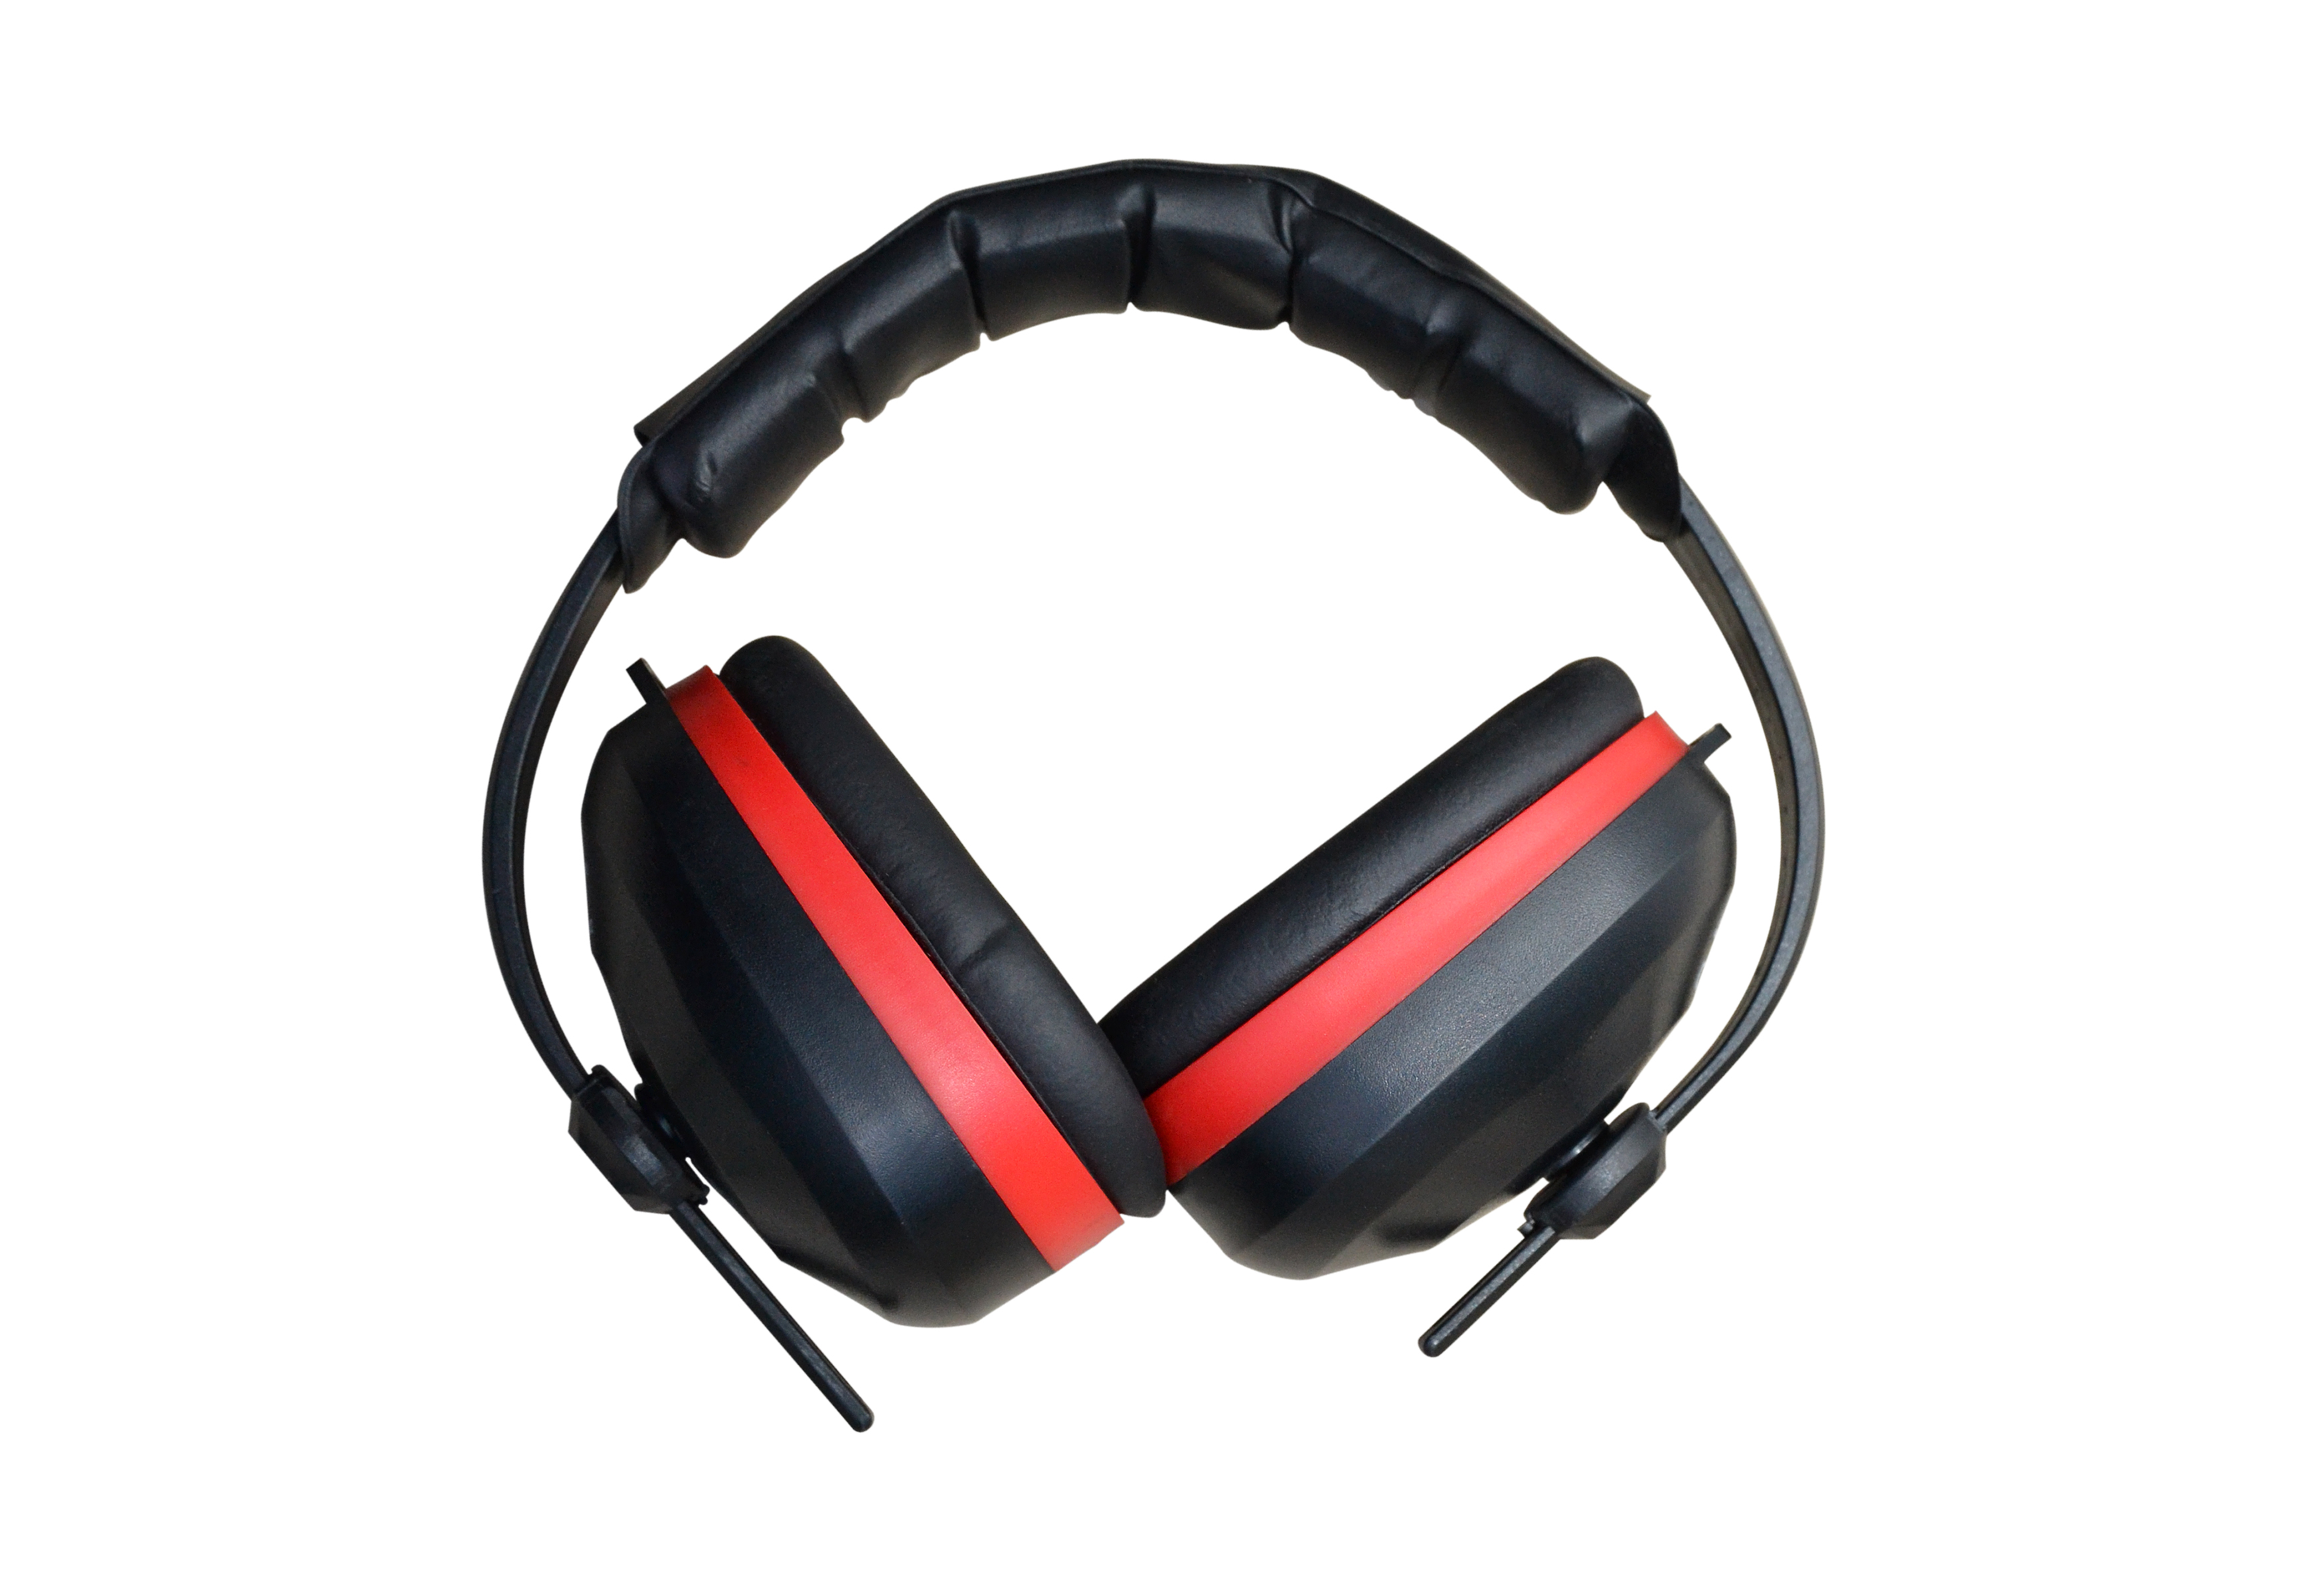 Hearing protection, Adjustable, Protective, Loud, Muffs, HQ Photo